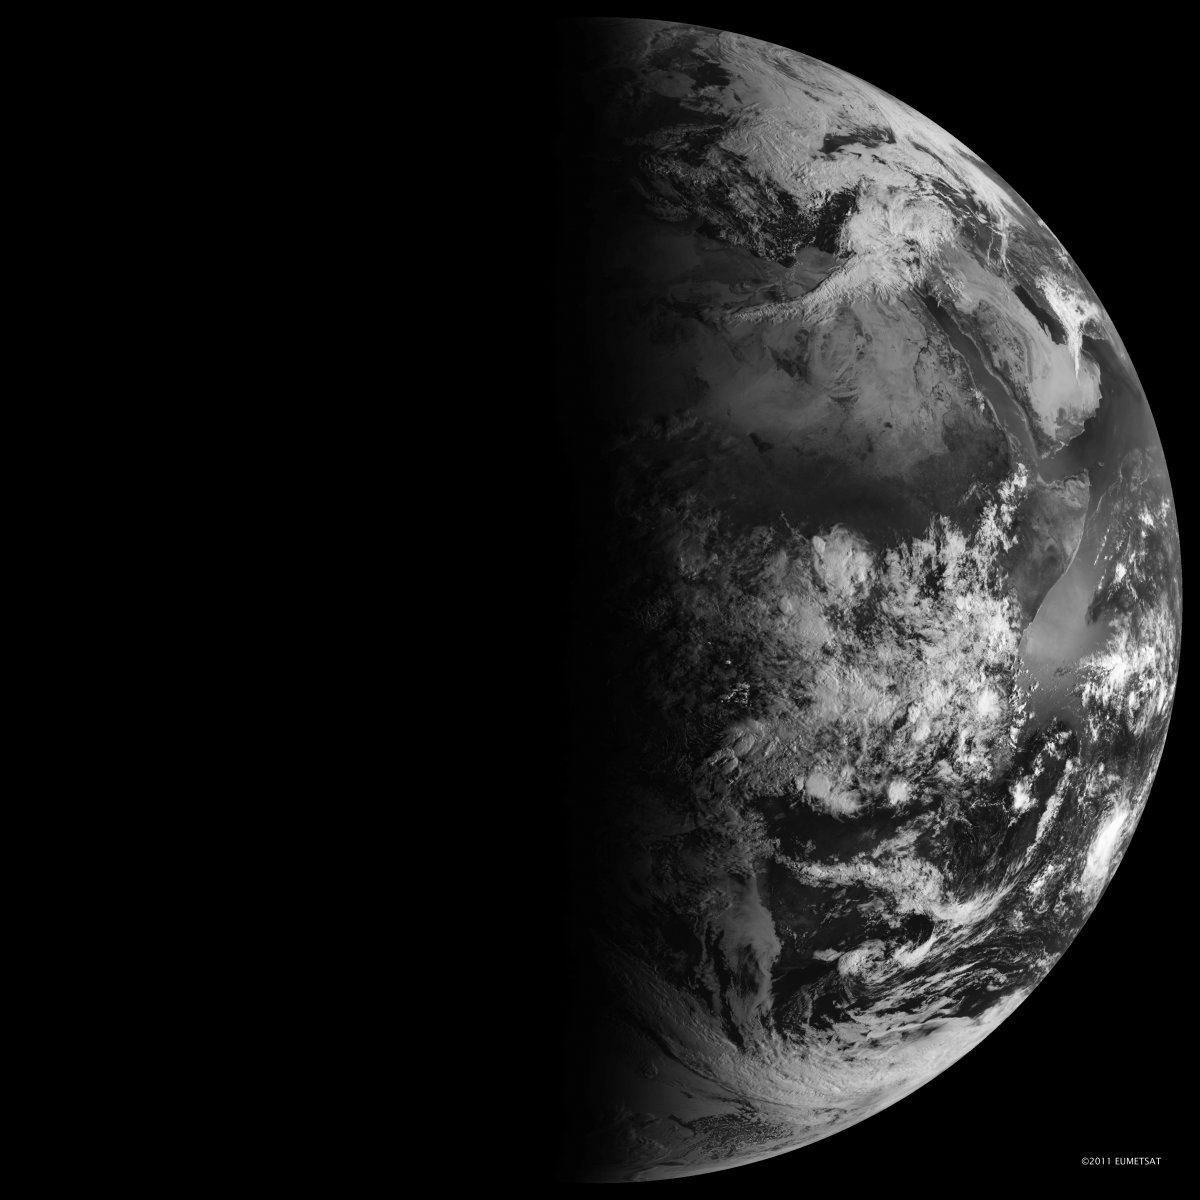 Black and white image of Earth with half illuminated by sunlight and half in darkness